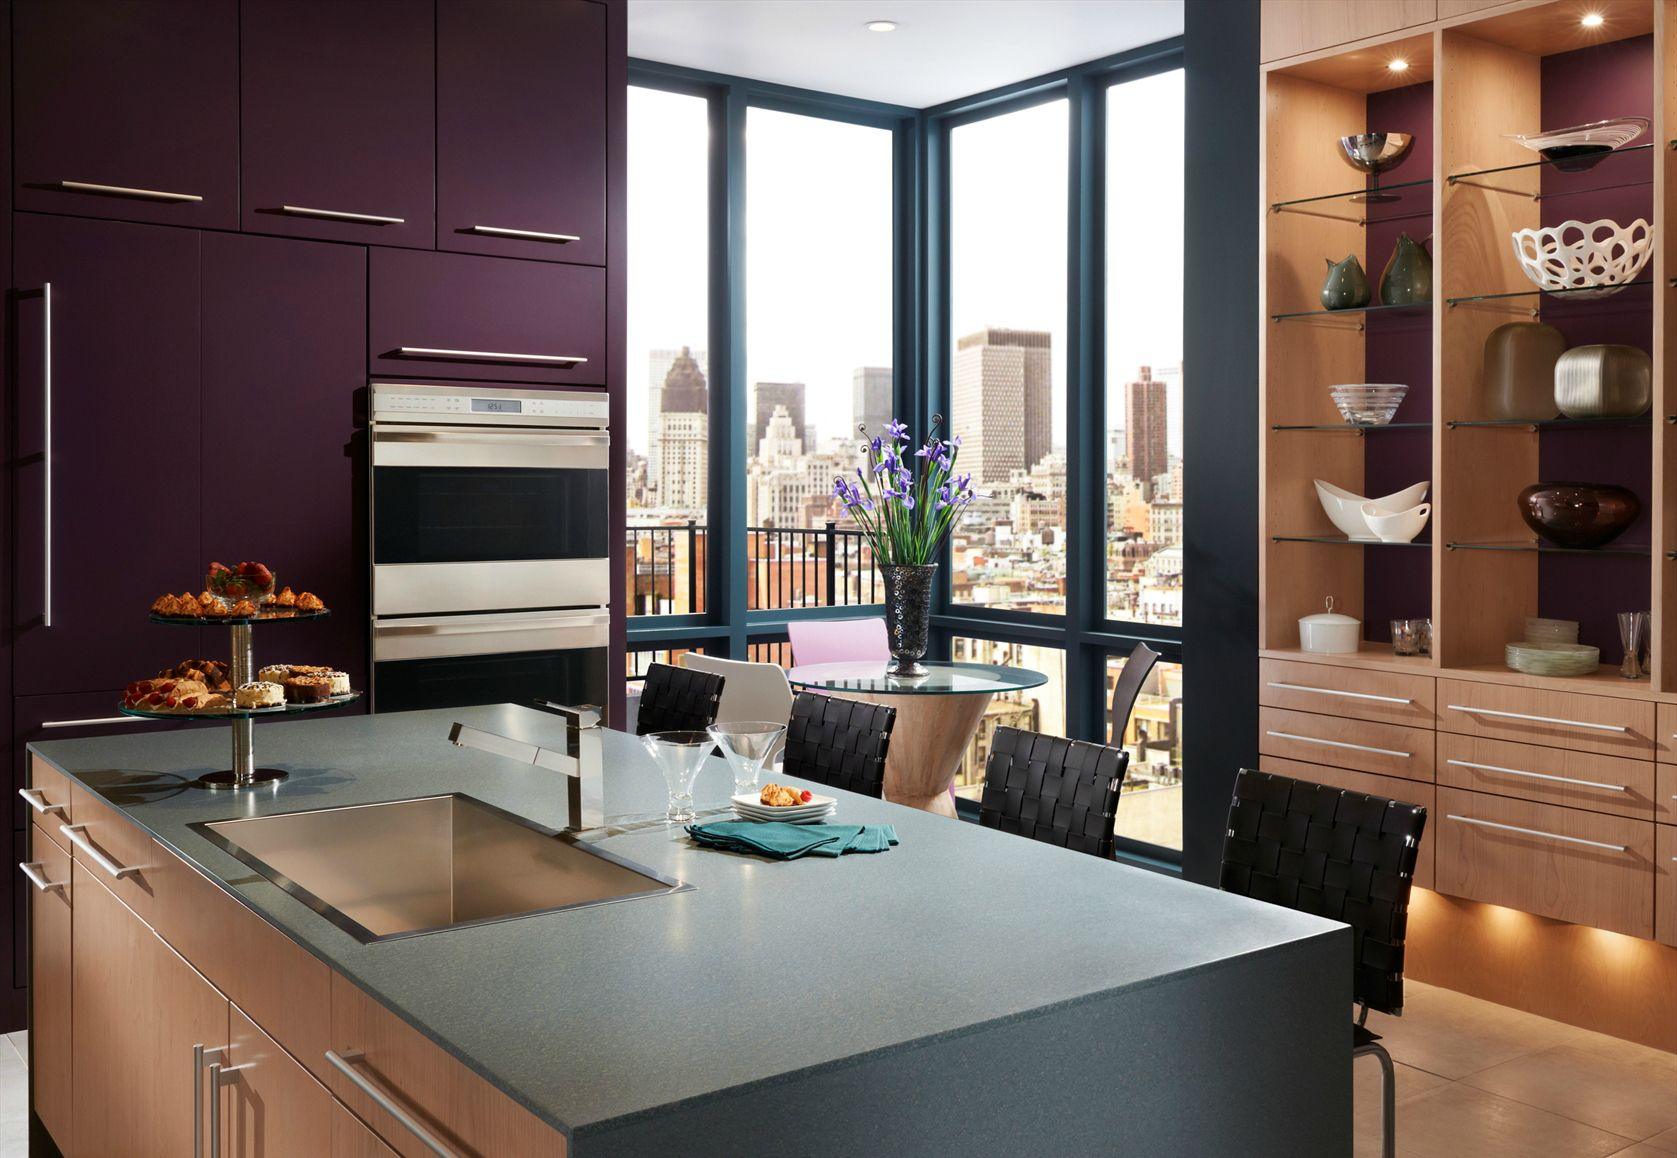 warm wood meets bold designer color in this vibrant kitchen